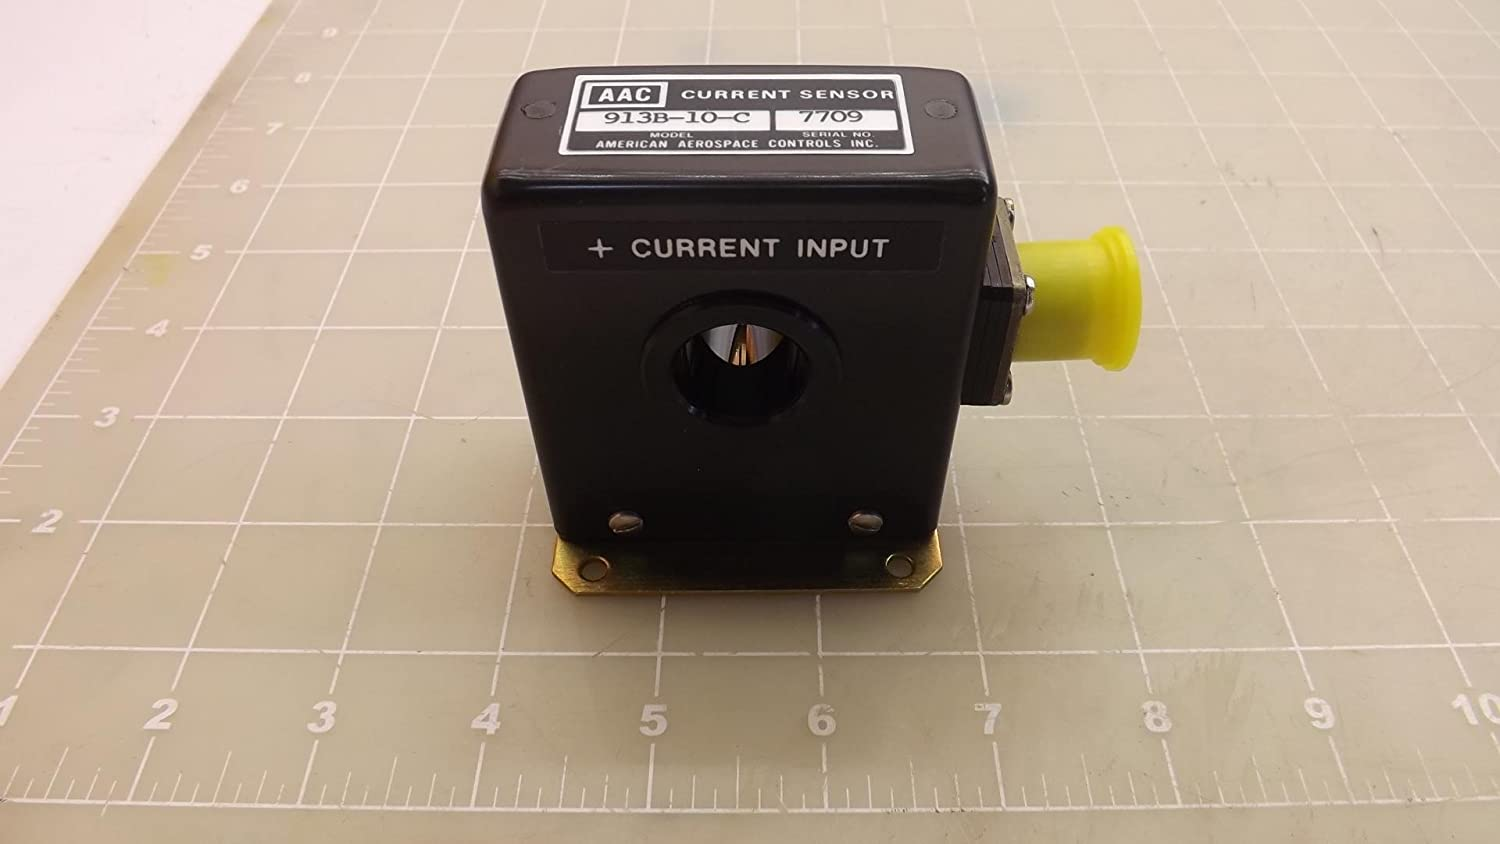 ACC American Aerospace Controls Current 913B-10-C Sensor At Save money the price of surprise T34468